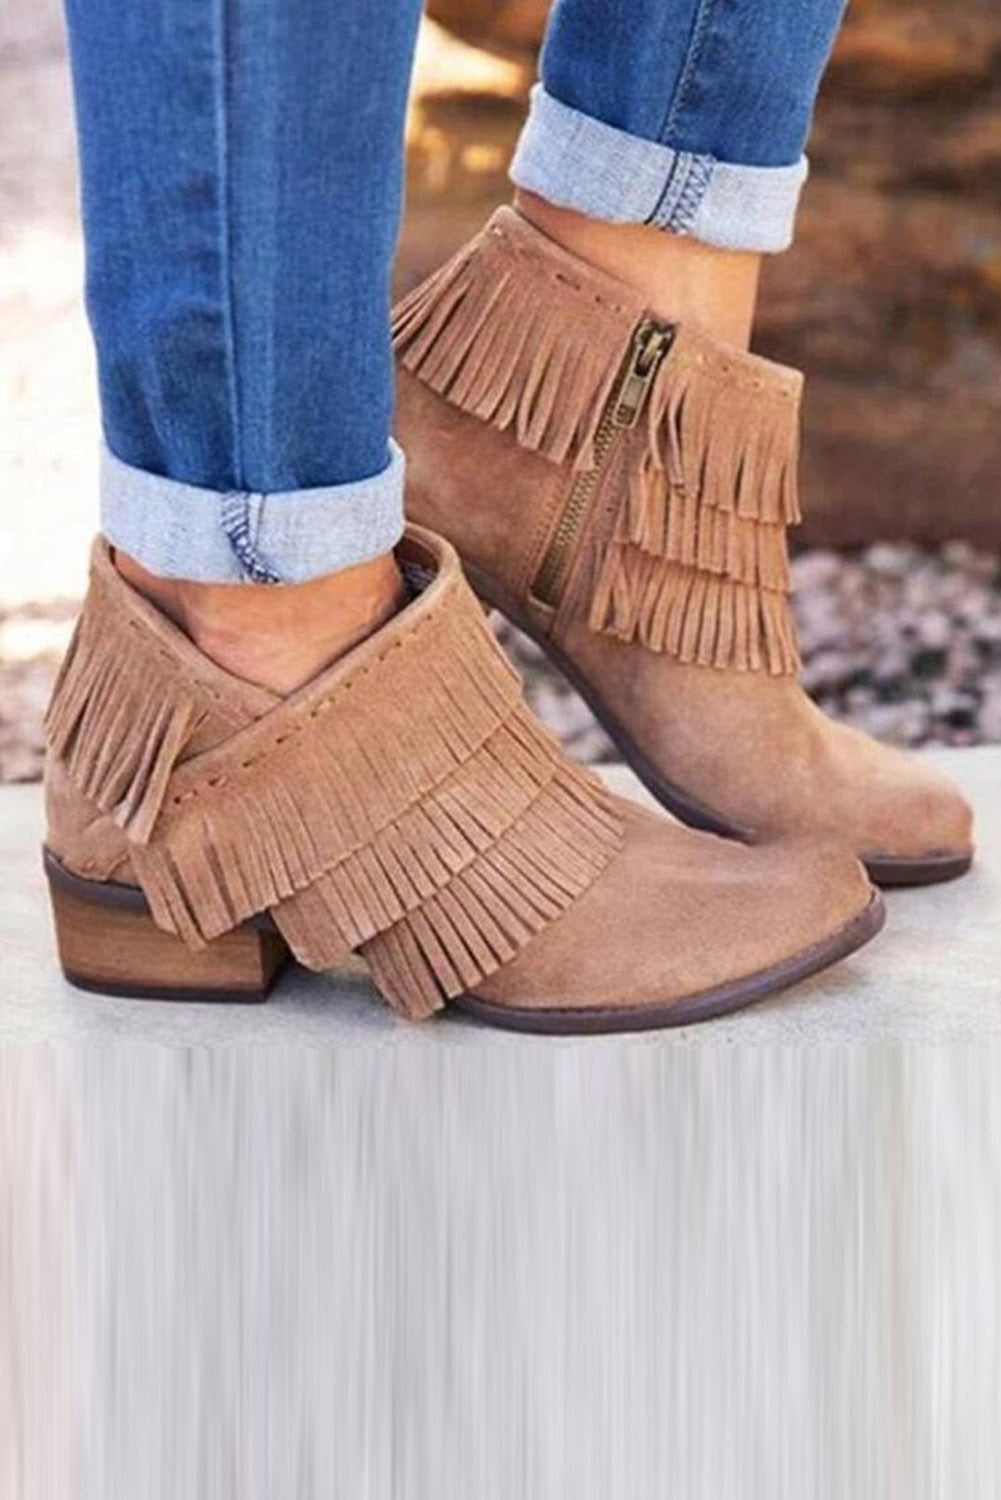 Khaki Low Heel Fringed Ankle Boots Boots Discount Designer Fashion Clothes Shoes Bags Women Men Kids Children Black Owned Business